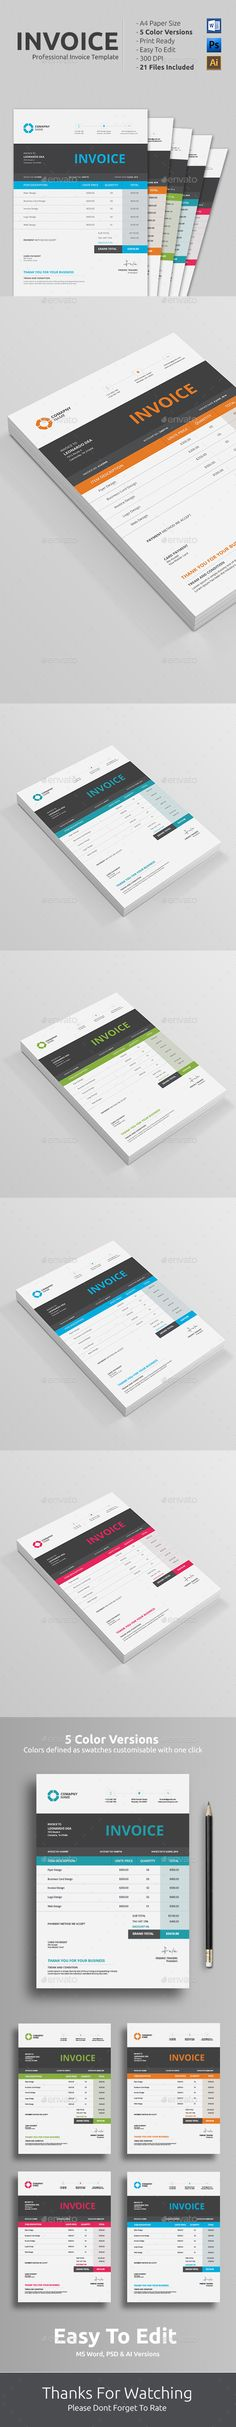 Invoice Template #design Download: http://graphicriver.net/item/invoice/13115210?ref=ksioks